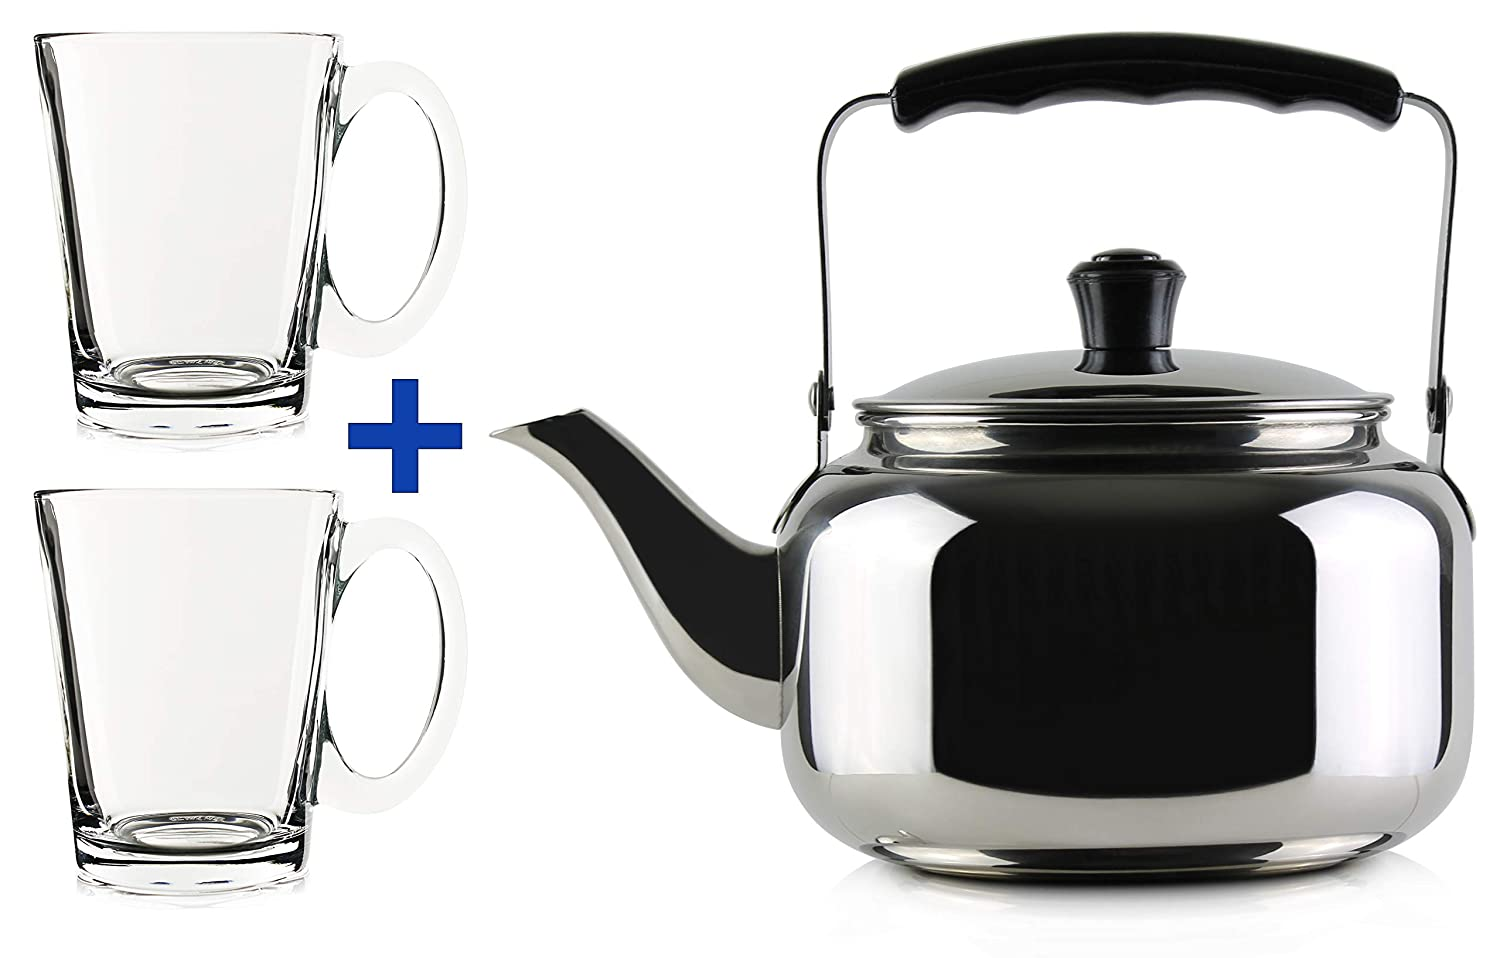 20 oz Stainless Steel Classic Tea Kettle w Two 8 oz Clear Glass Tea Cups